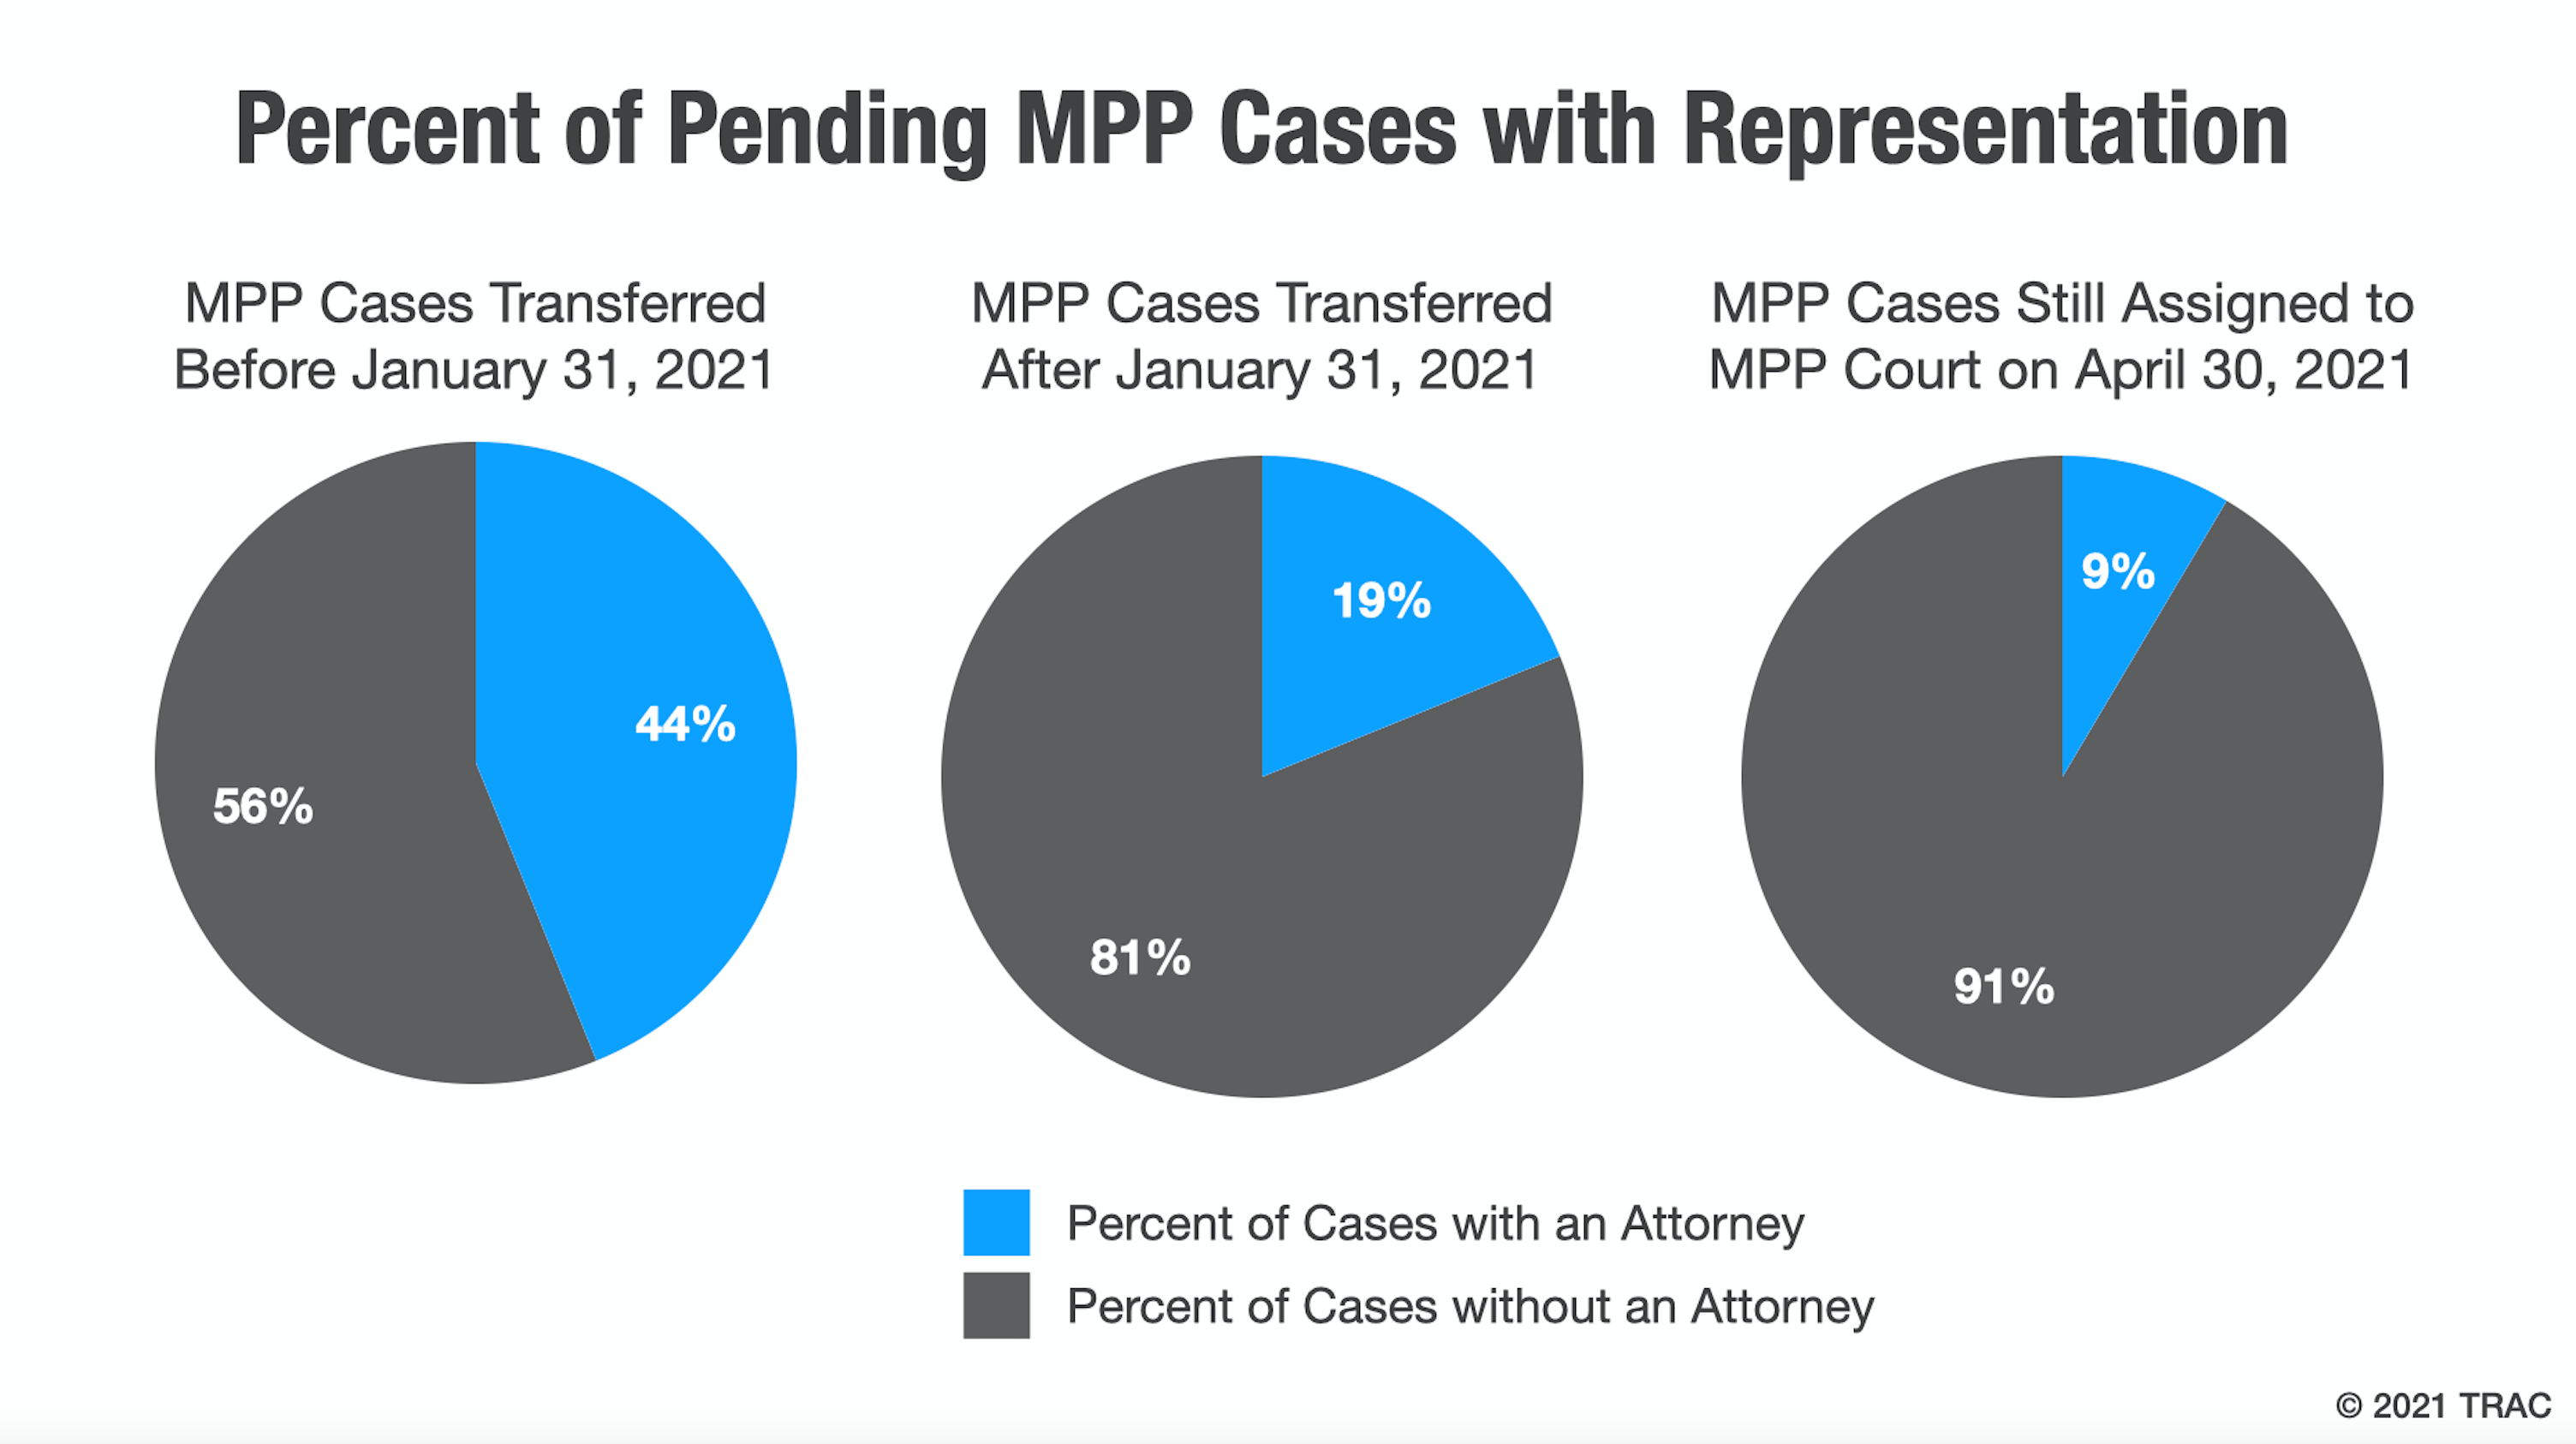 series of pie graphs depicting the percent of pending MPP cases with representation